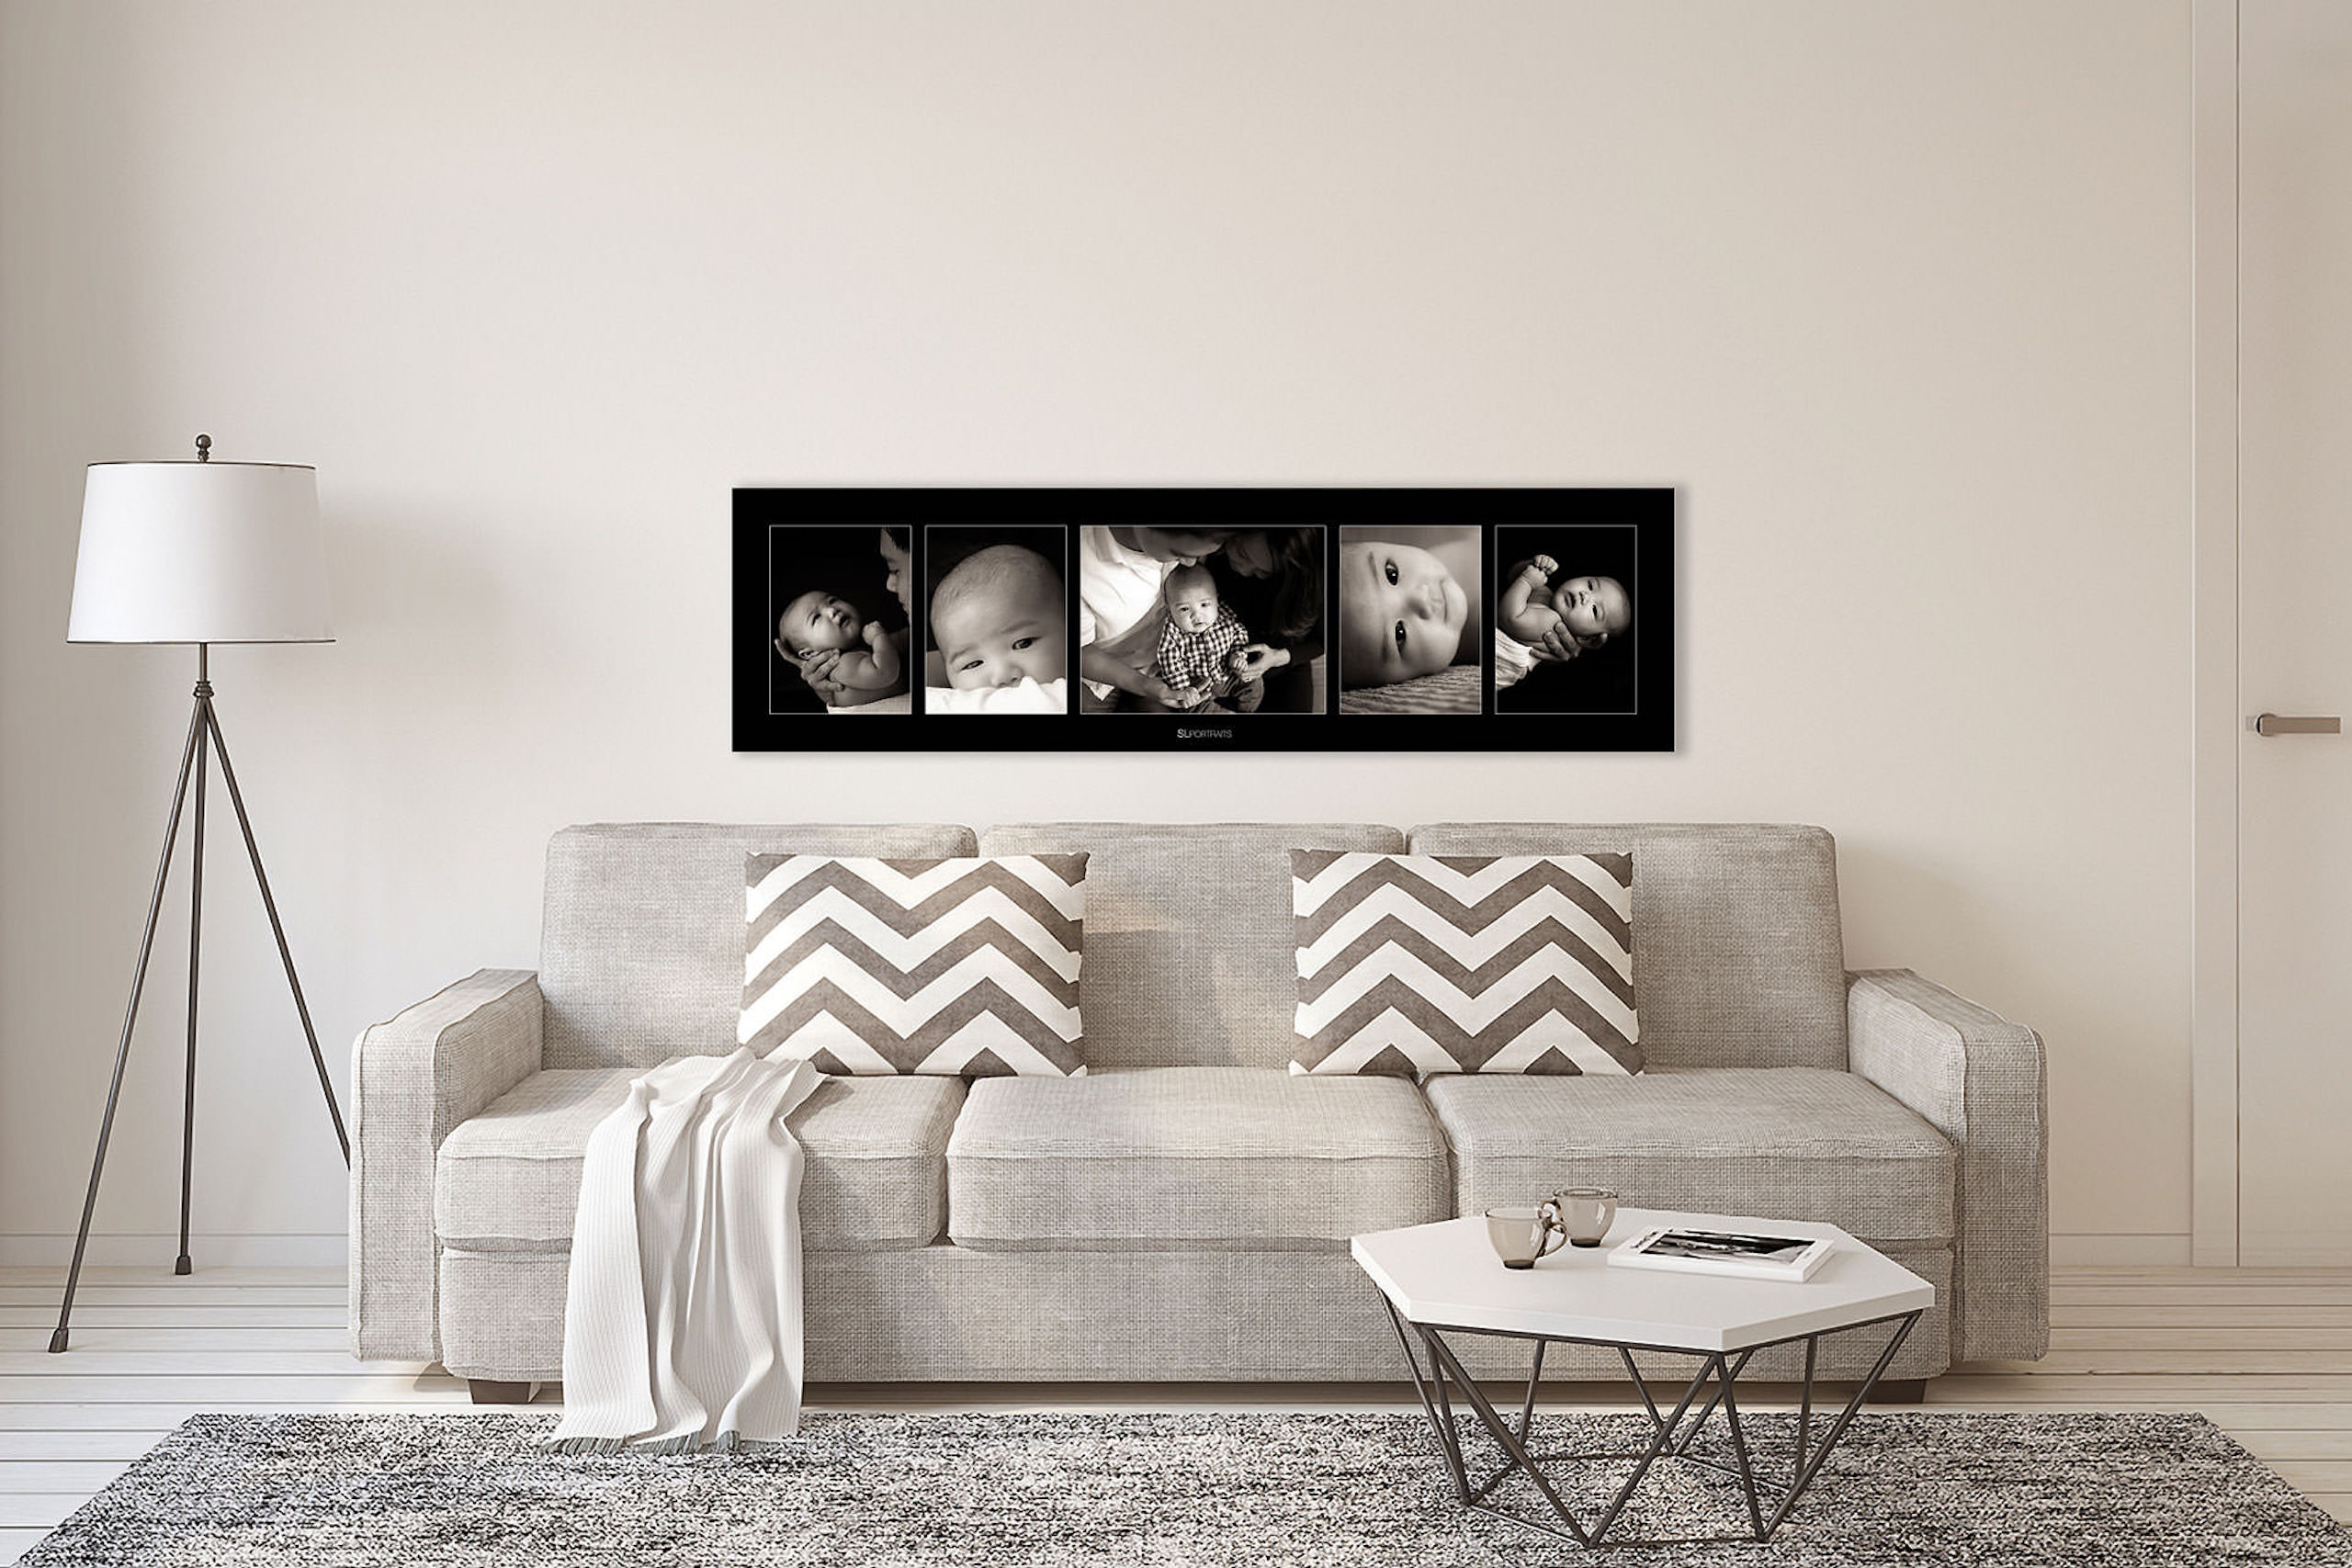 large wall art collection of a baby boy hung above a white couch by top calgary portrait photographer sean leblanc